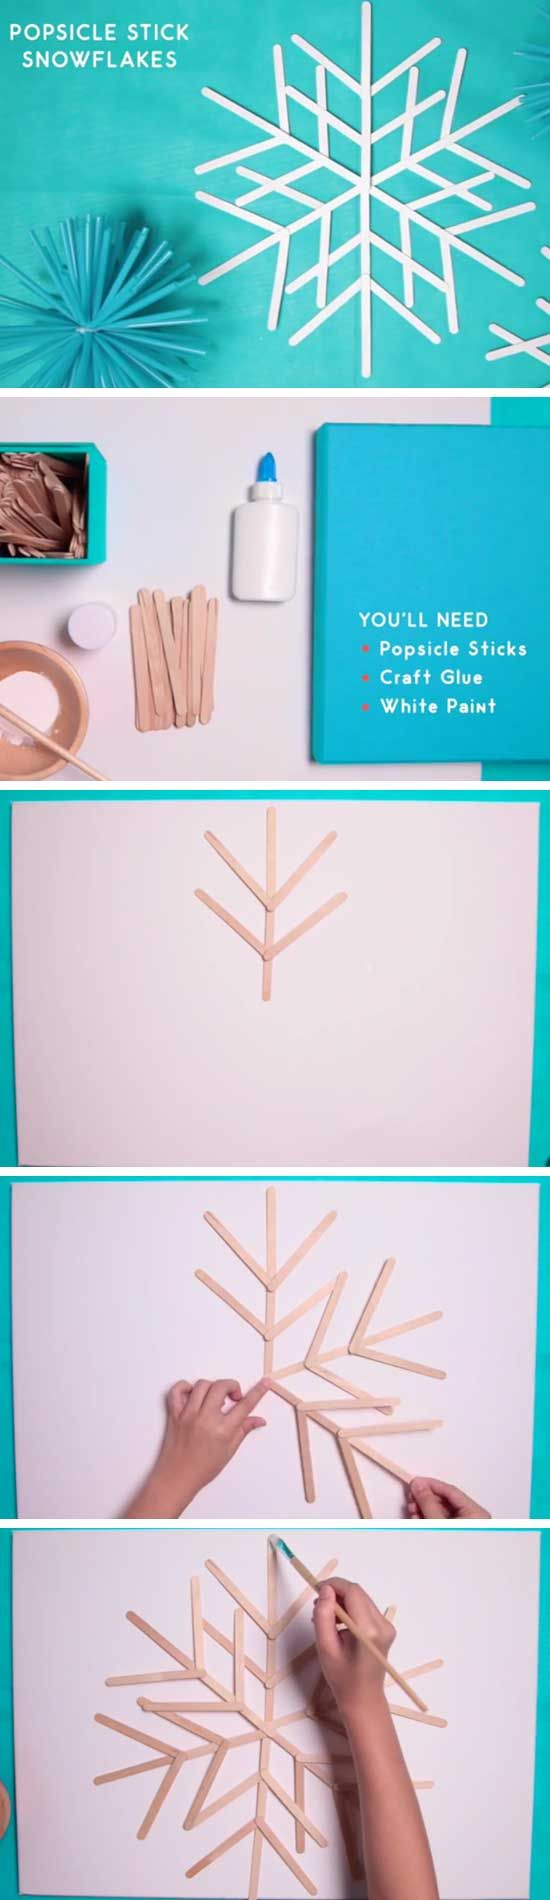 How to make christmas centerpieces with ice - Giant Popsicle Stick Snowflakes Diy Christmas Decorations For Home Cheap Diy Christmas Decorations Dollar